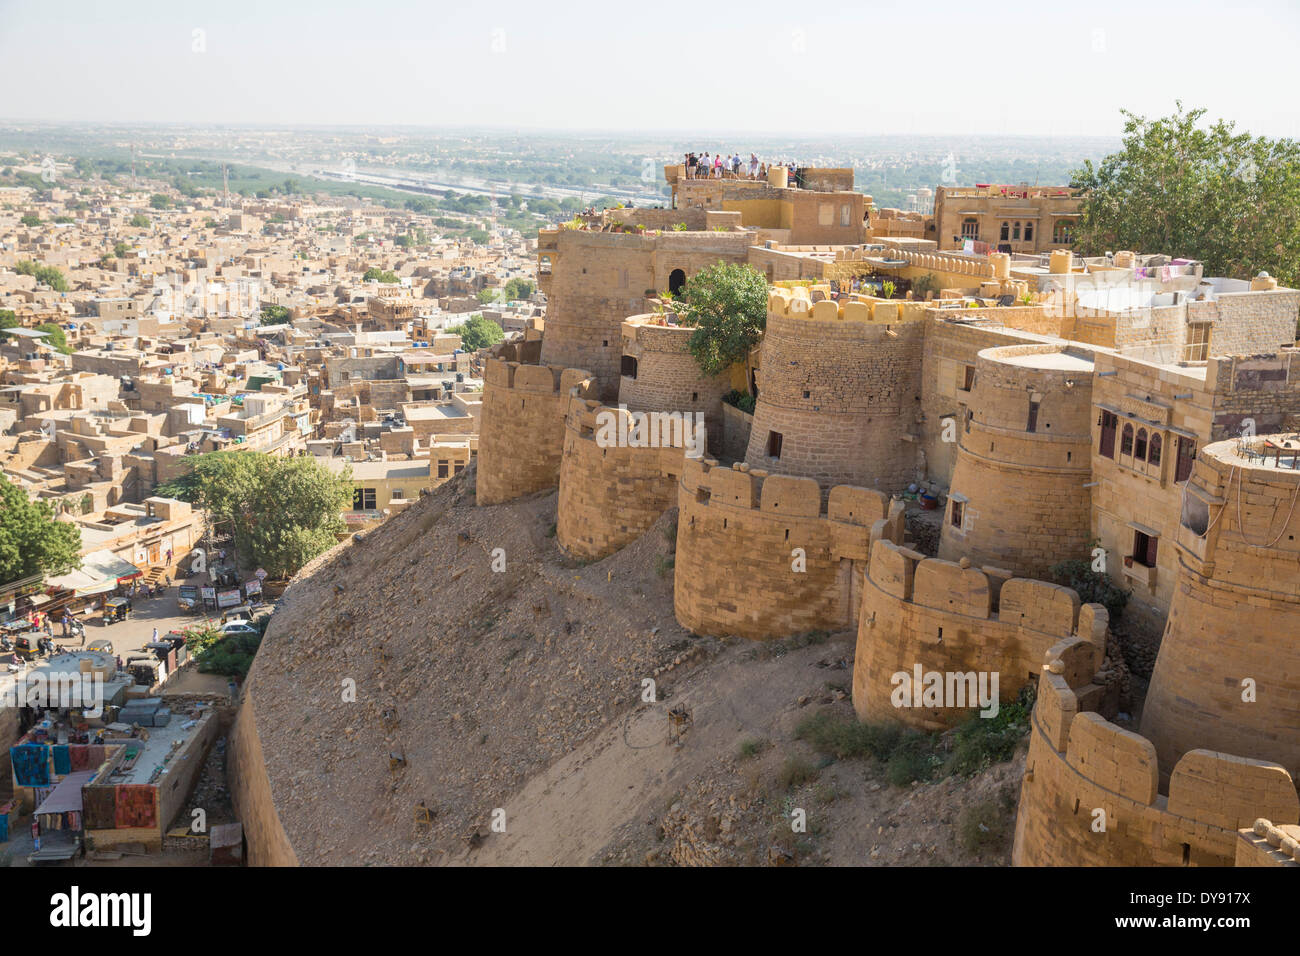 Fort, Jaisalmer, Rajasthan, military wall, bastions, Asia, India, town, city, - Stock Image